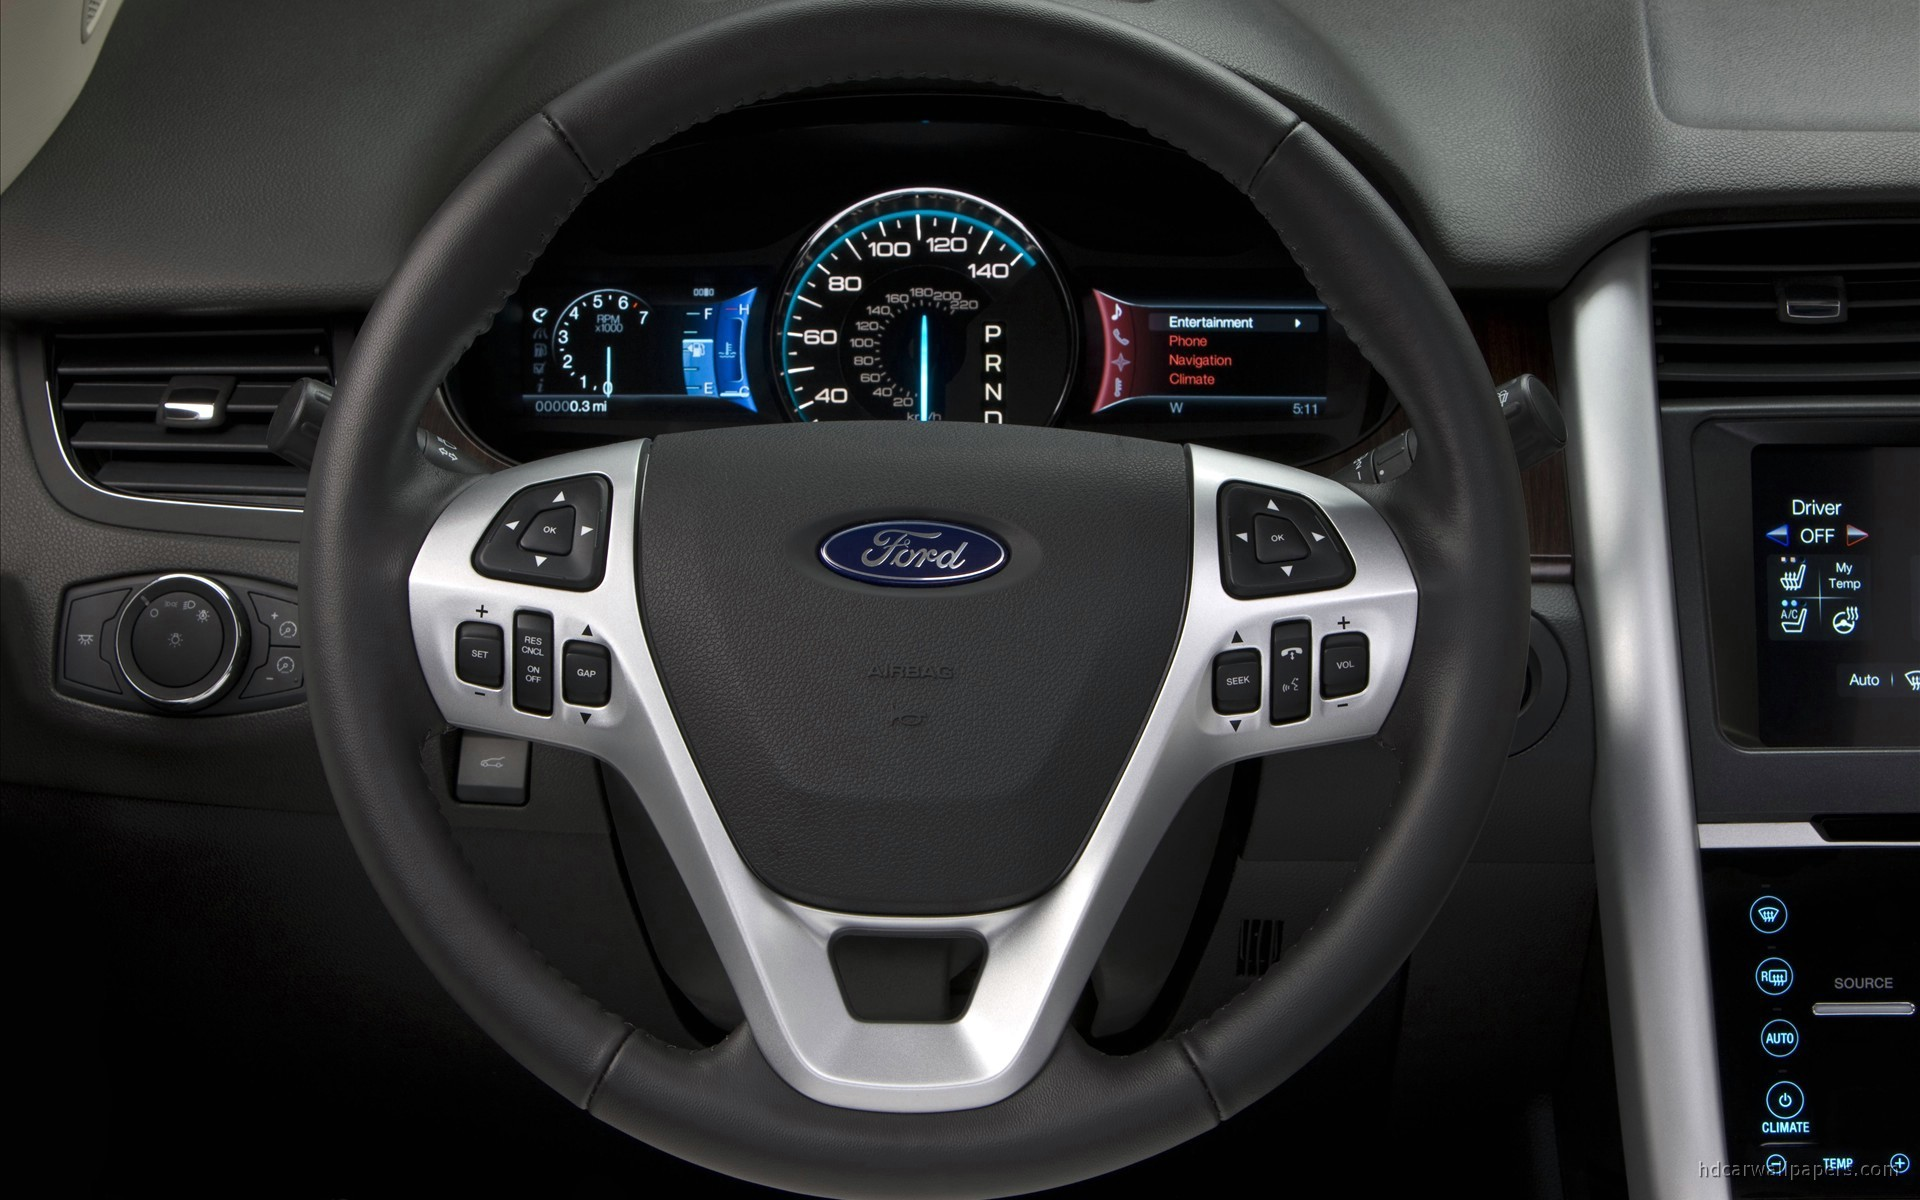 2011 Ford Edge Interior Wallpaper | HD Car Wallpapers | ID #650